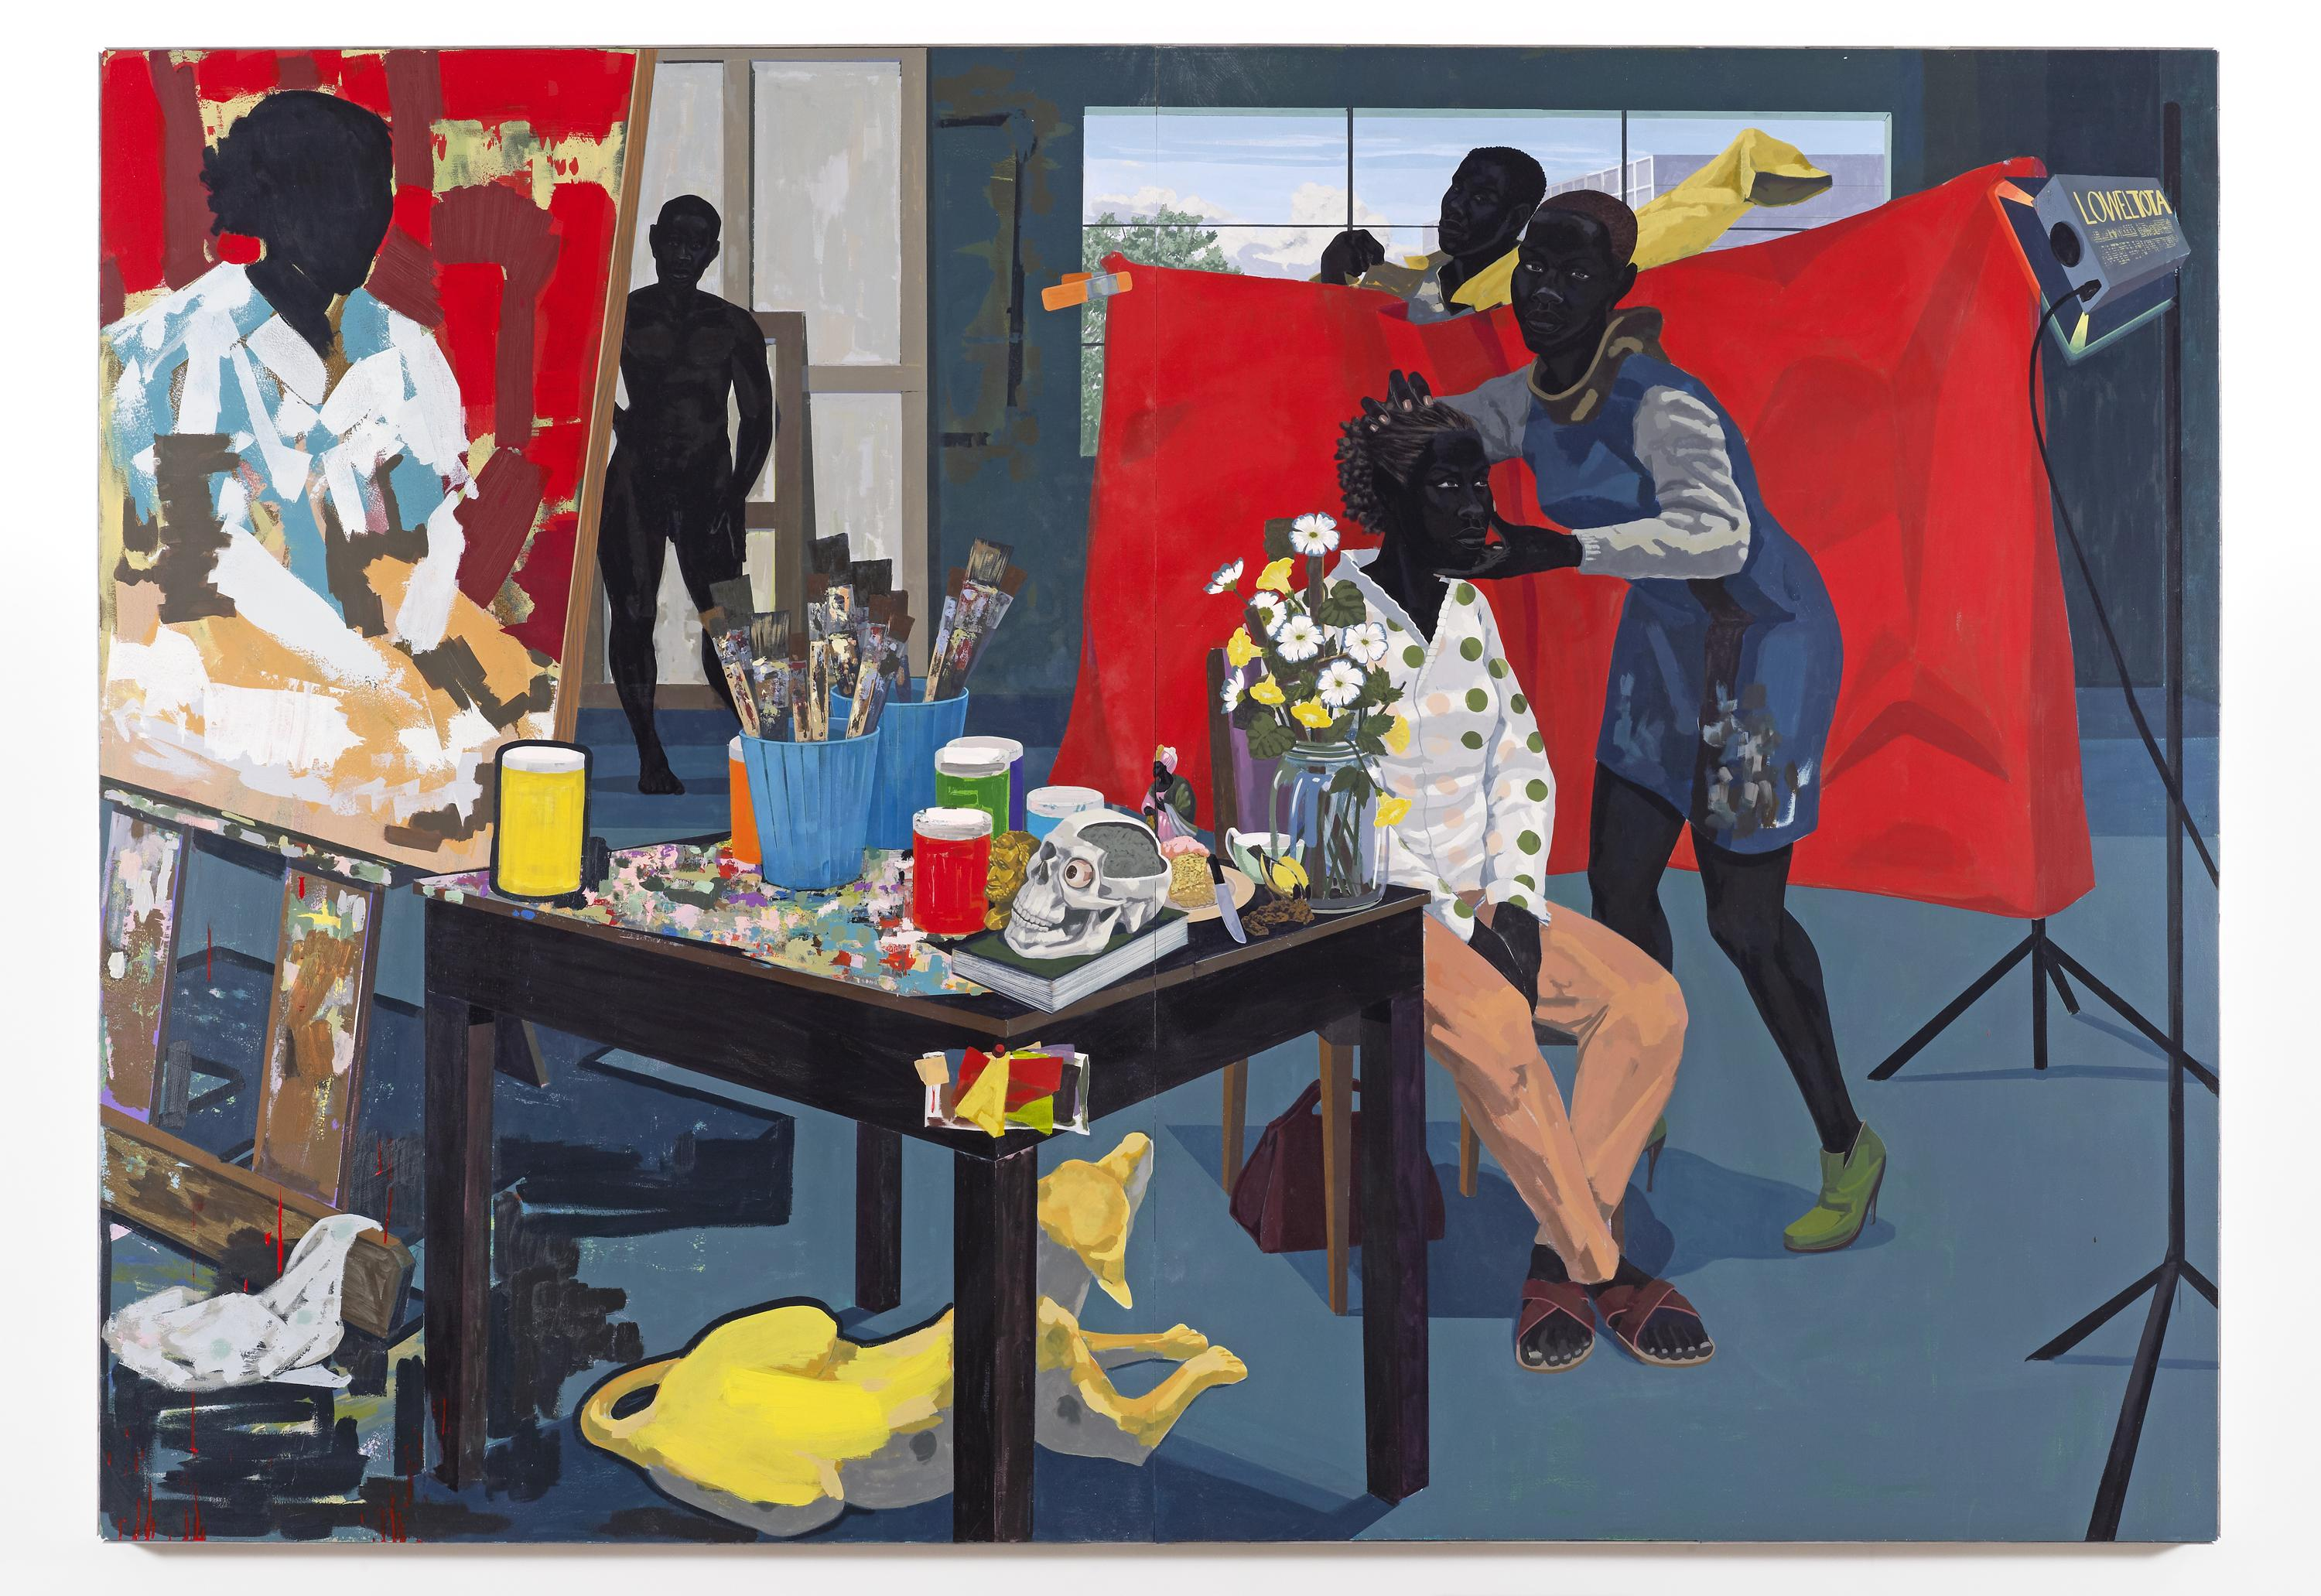 A black woman poses in a chair against a vivid red backdrop while a woman adjusts her head and a man gets dressed behind the backdrop. The painted portrait in progress is shown on an easel at left, next to a table strewn with paints and paintbrushes, a skull, and vase with flowers. A yellow dog rests on the floor below the table. A nude figure stands in the background.